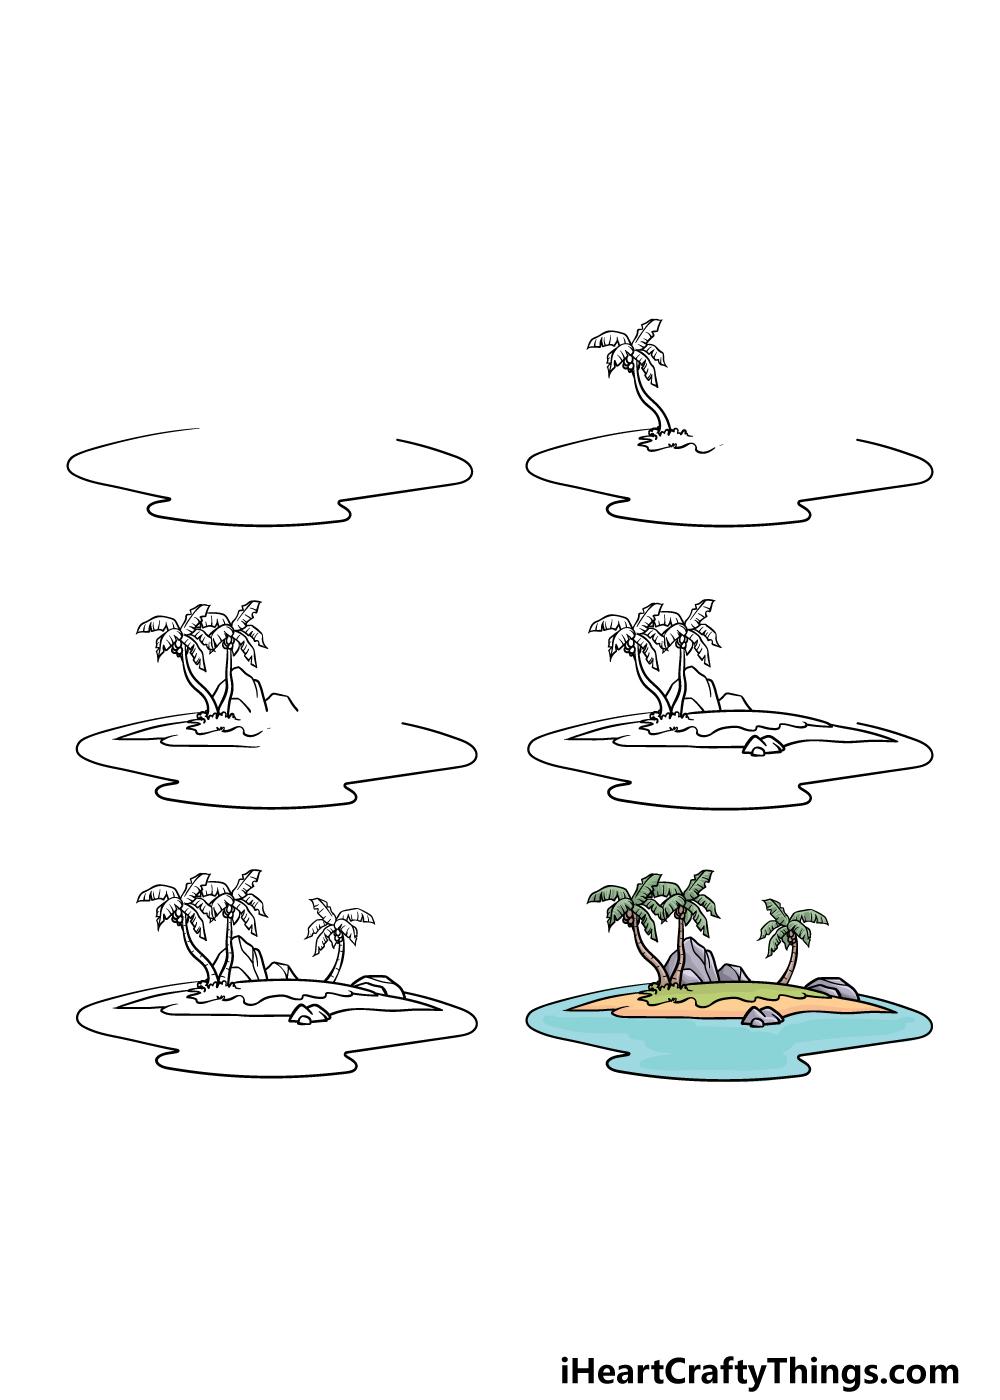 how to draw an island in 6 steps